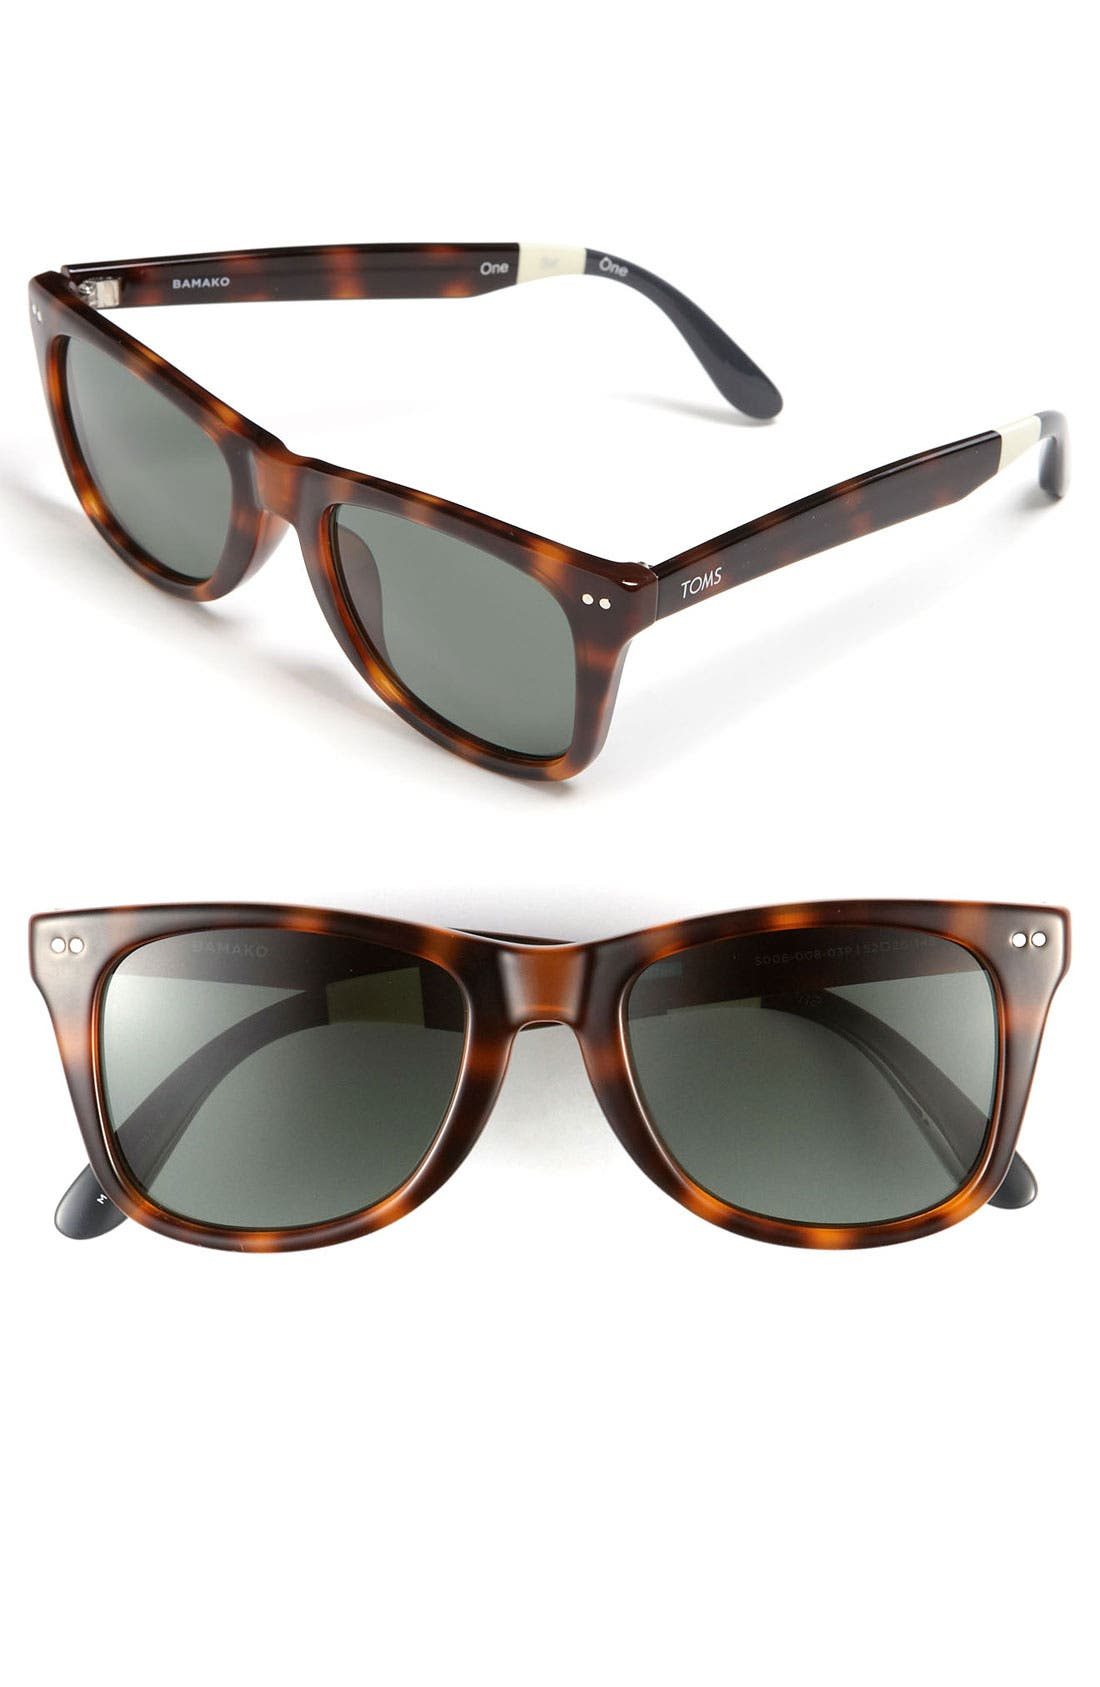 Main Image - TOMS 'Windward' 52mm Polarized Sunglasses